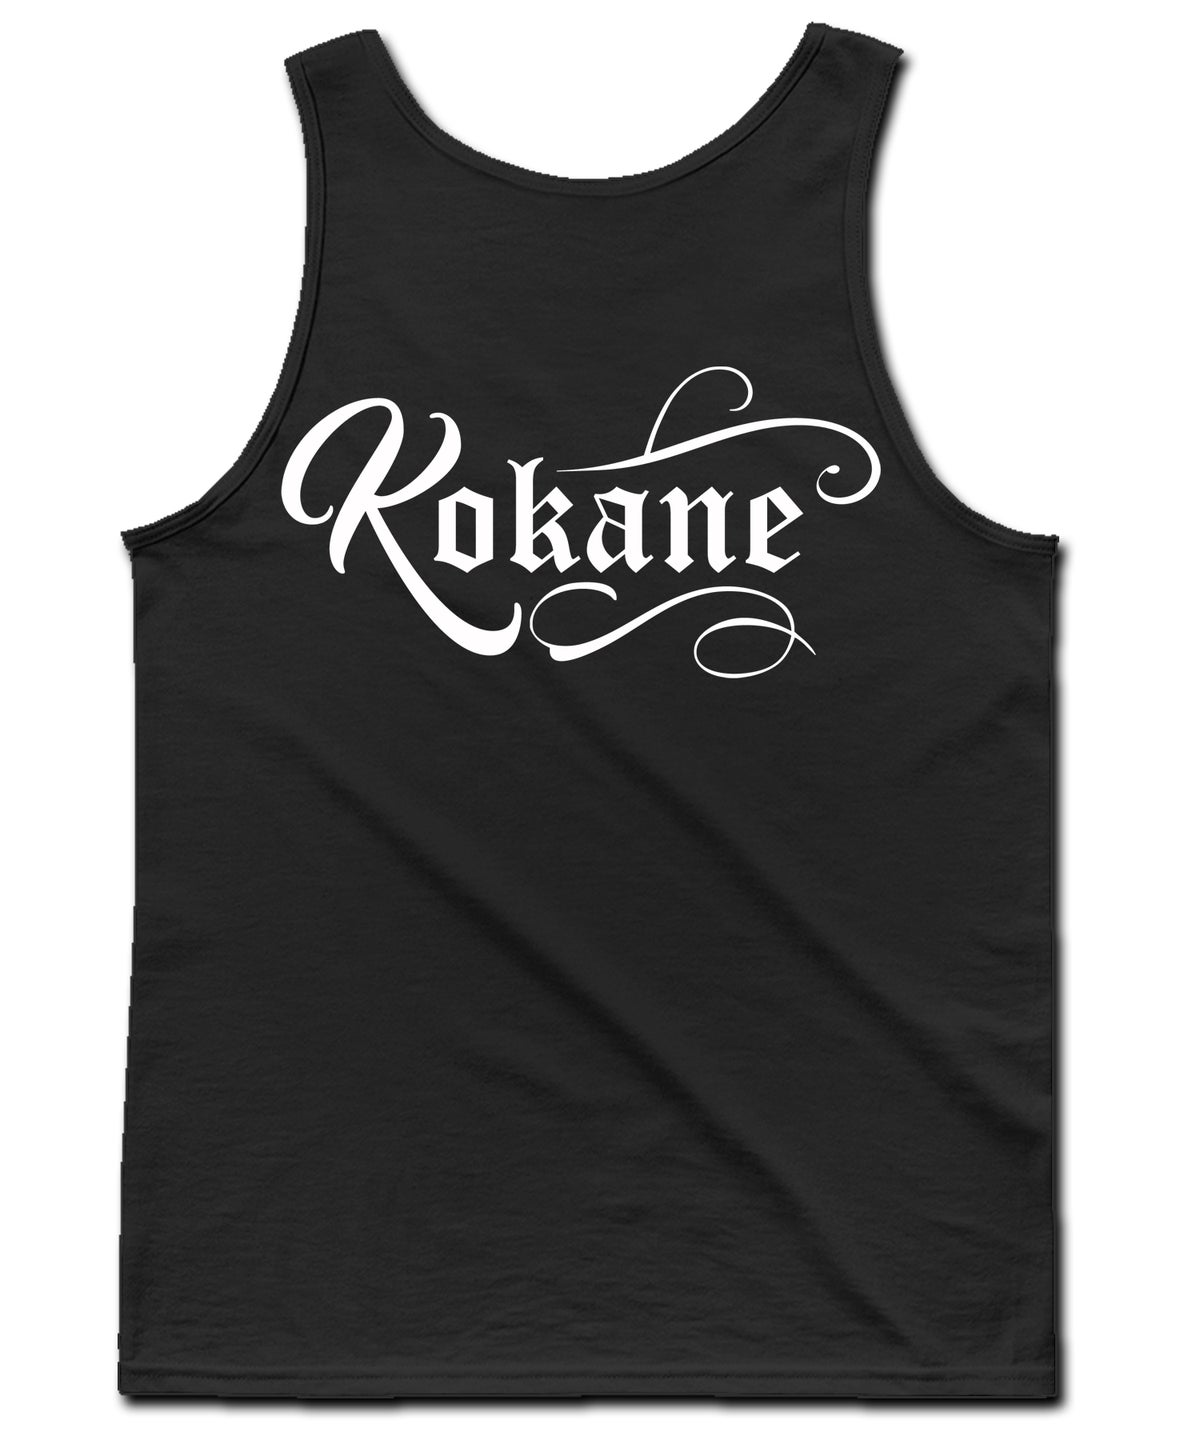 Image of STREET KOKANE TANK TOP